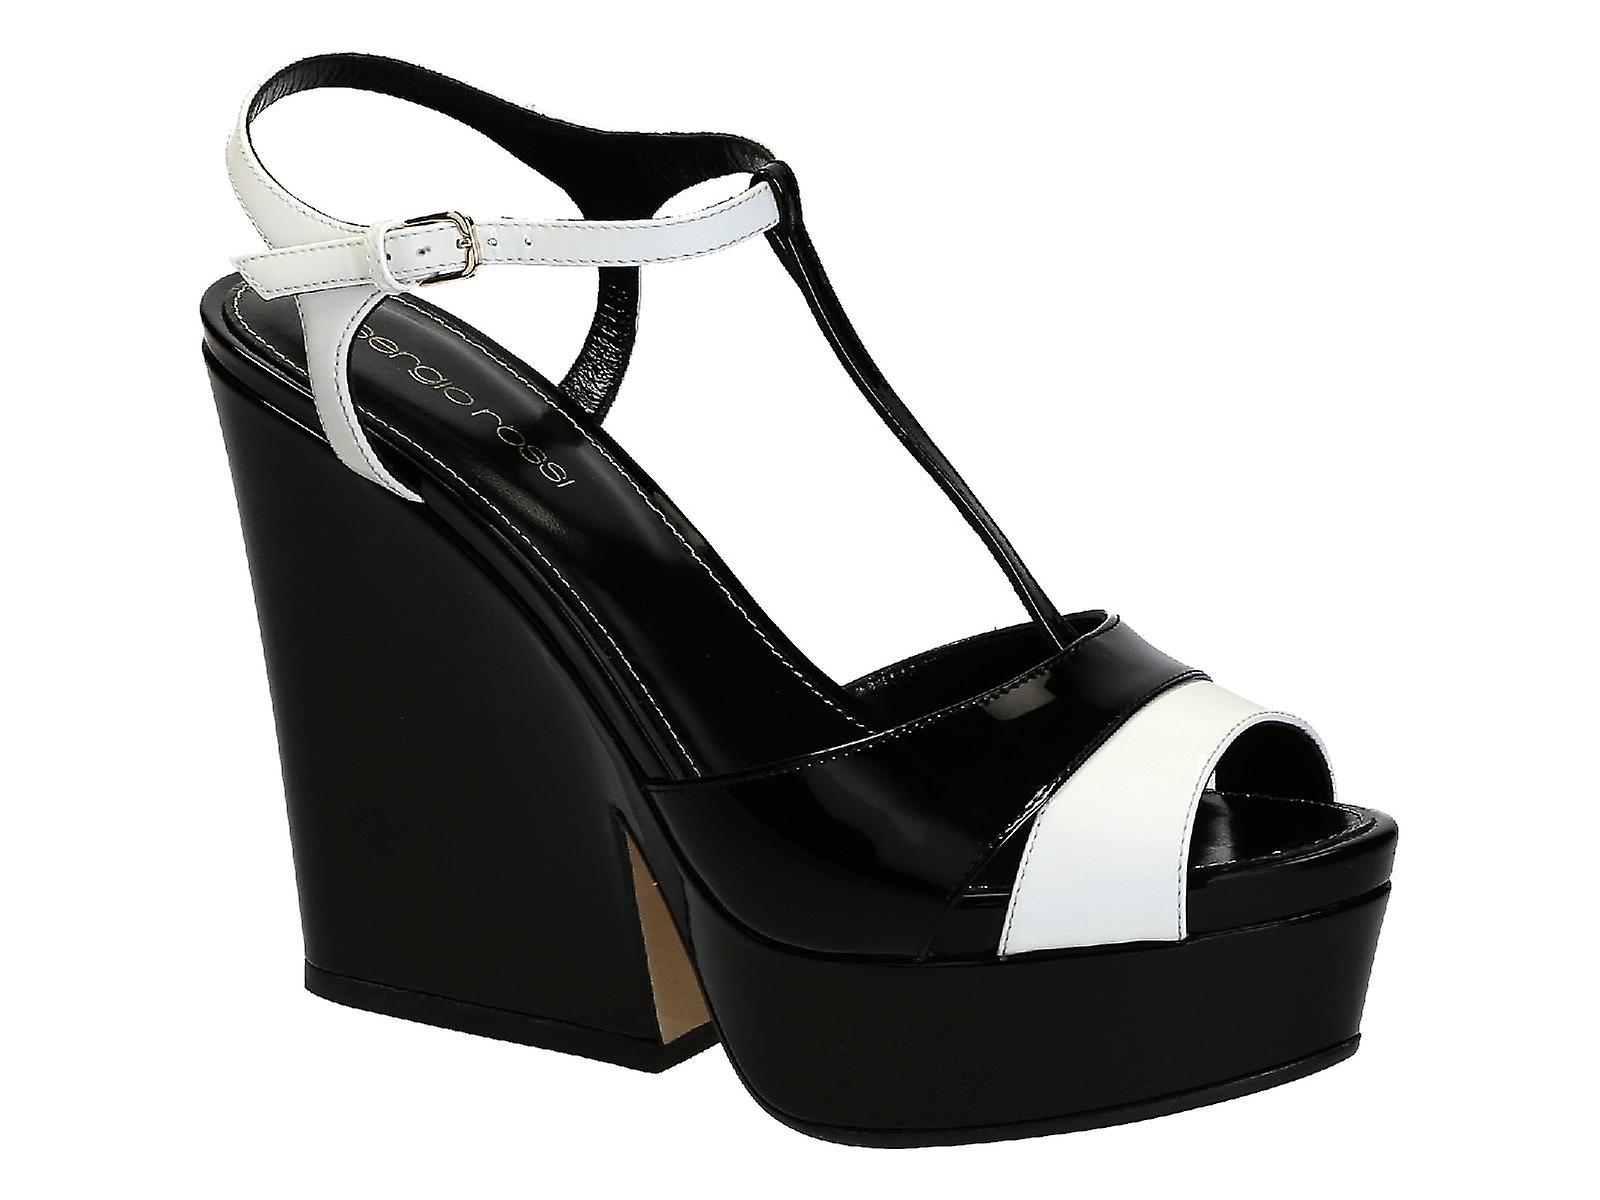 platform Rossi Patent with sandals Sergio black Leather xZBqaHUw